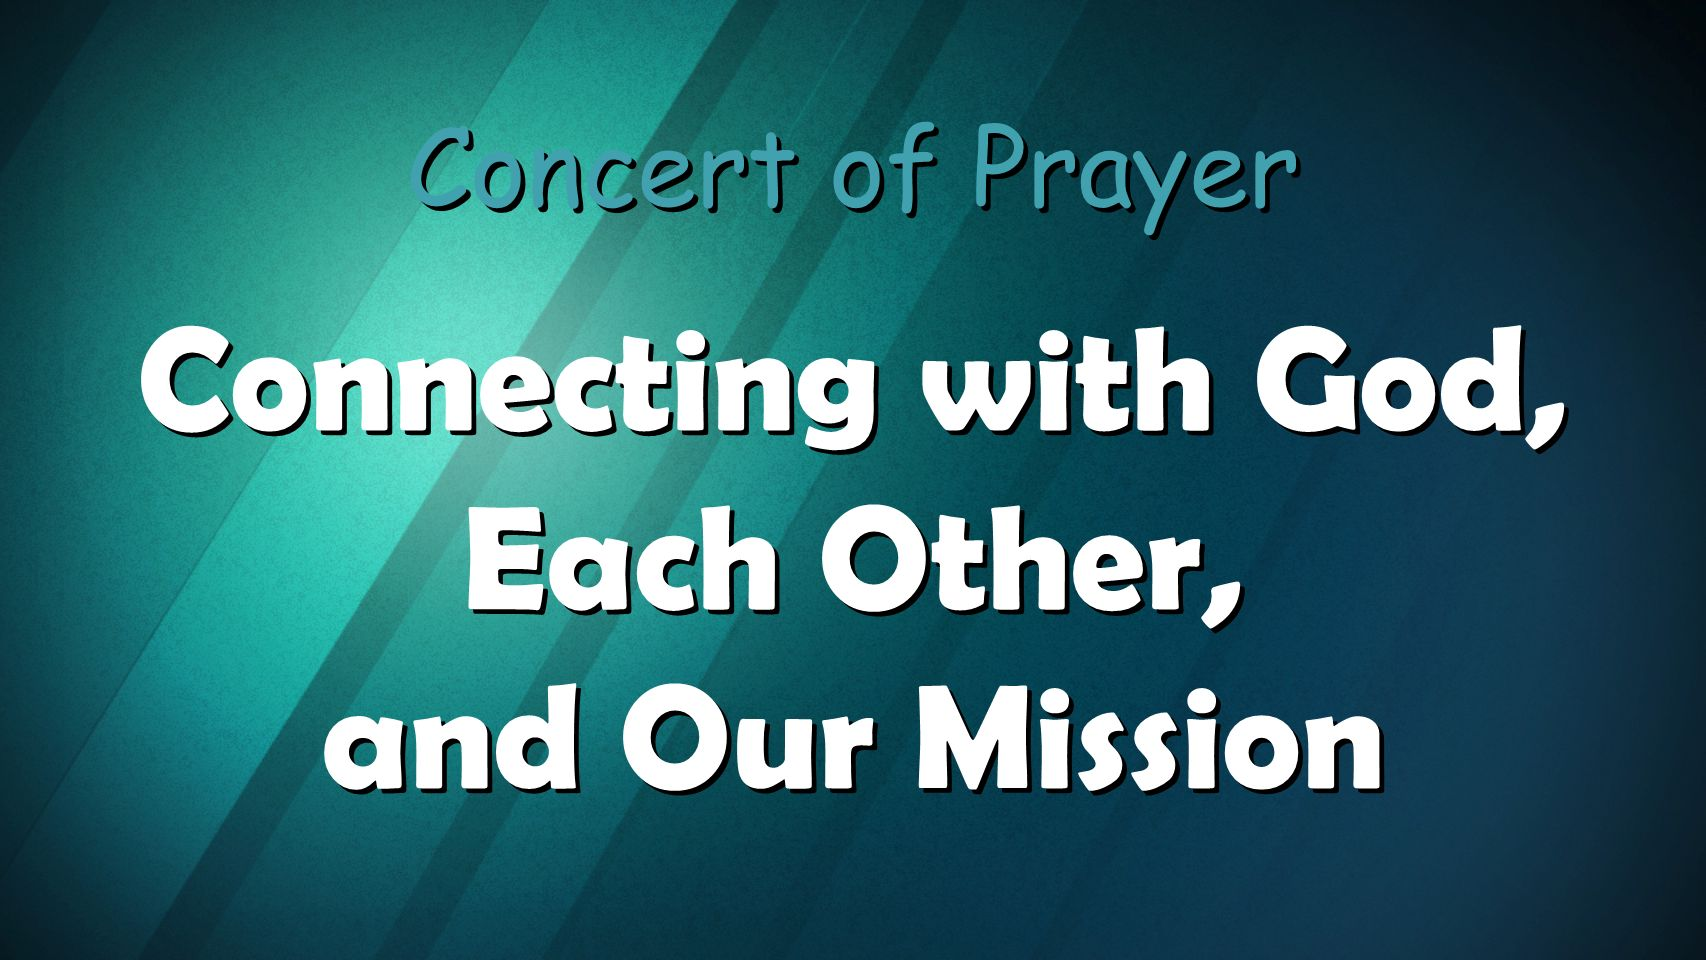 Connecting with God, Each Other, and Our Mission